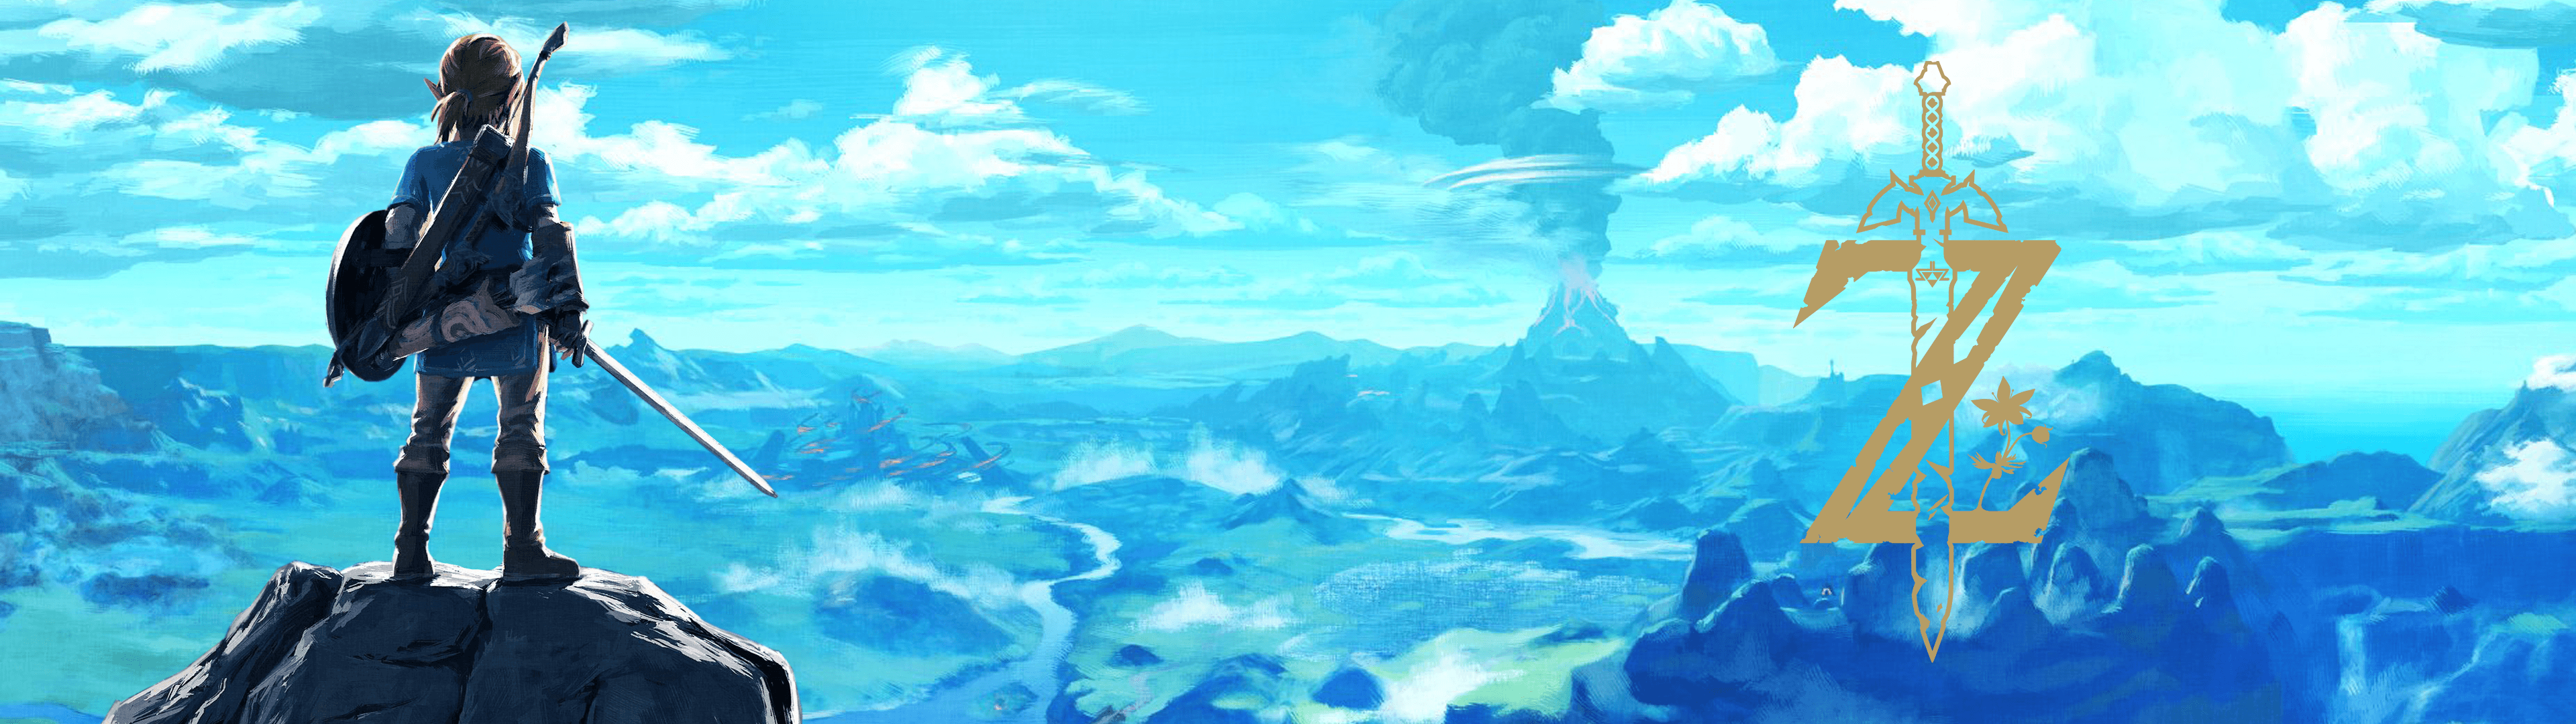 Legend Of Zelda Dual Screen Wallpapers Top Free Legend Of Zelda